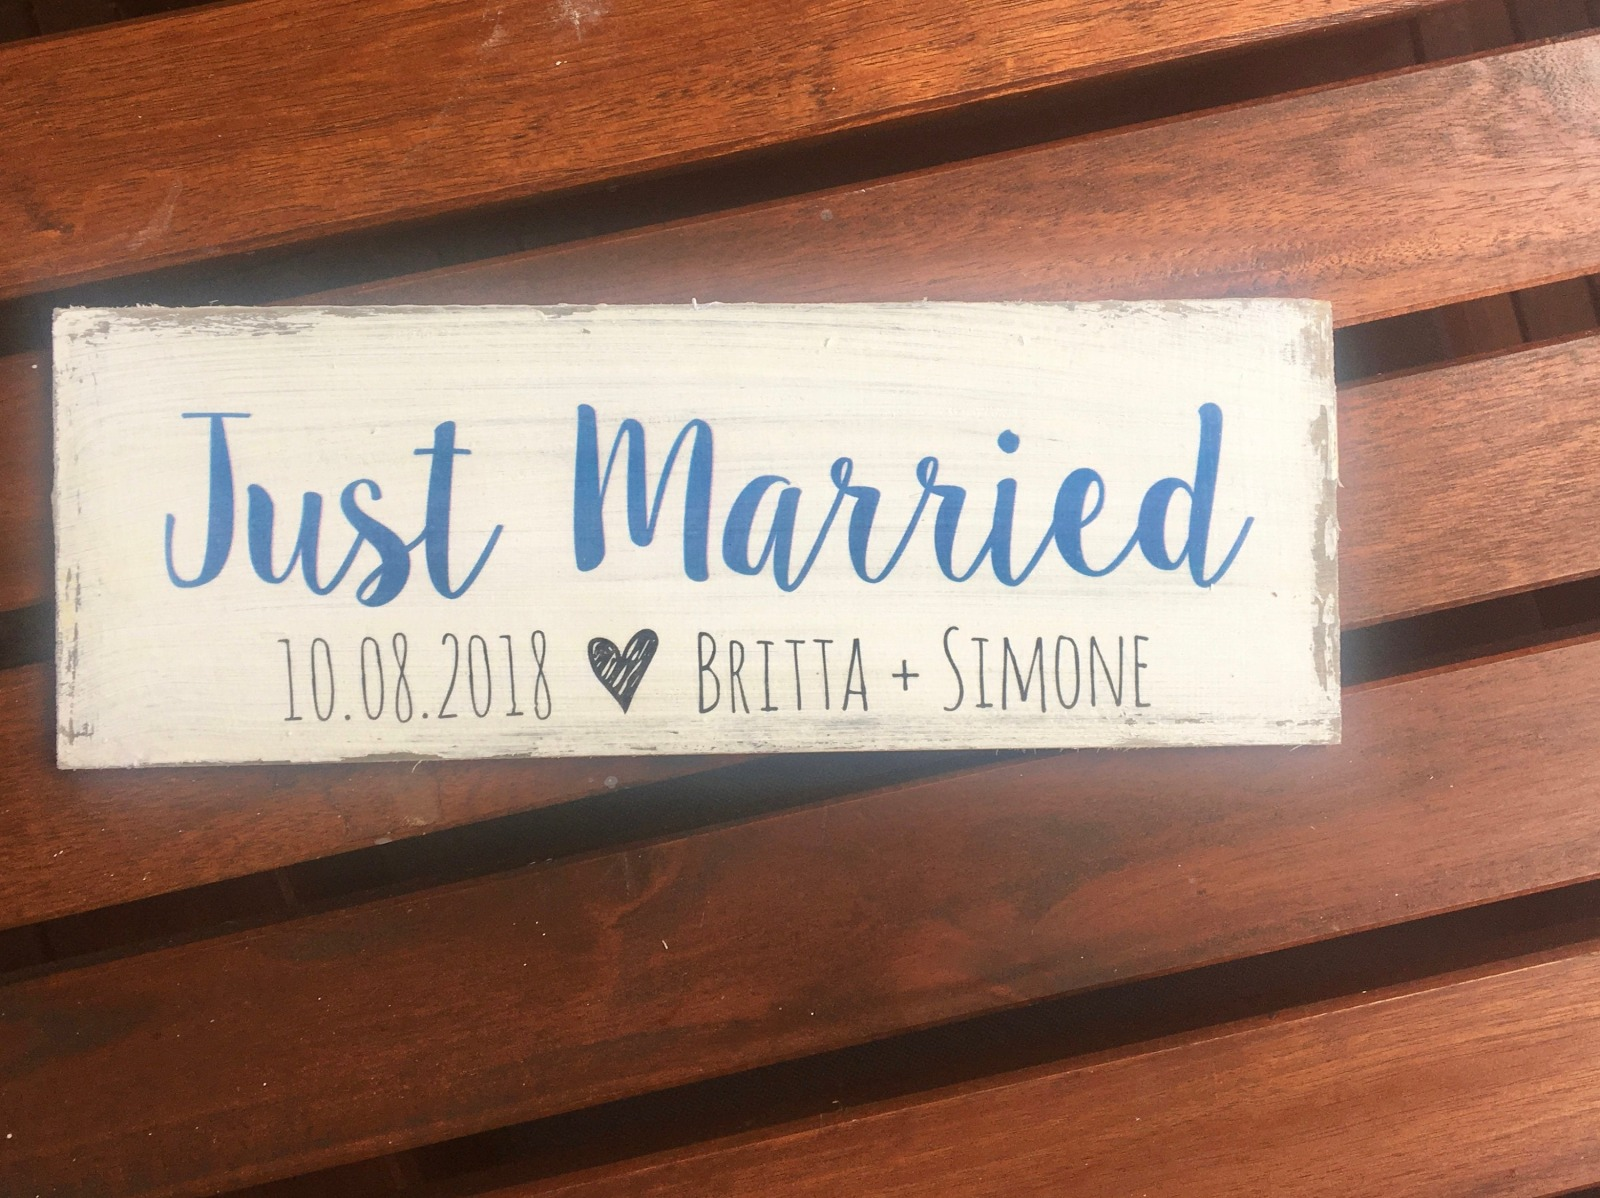 Just Married Holzschild 5